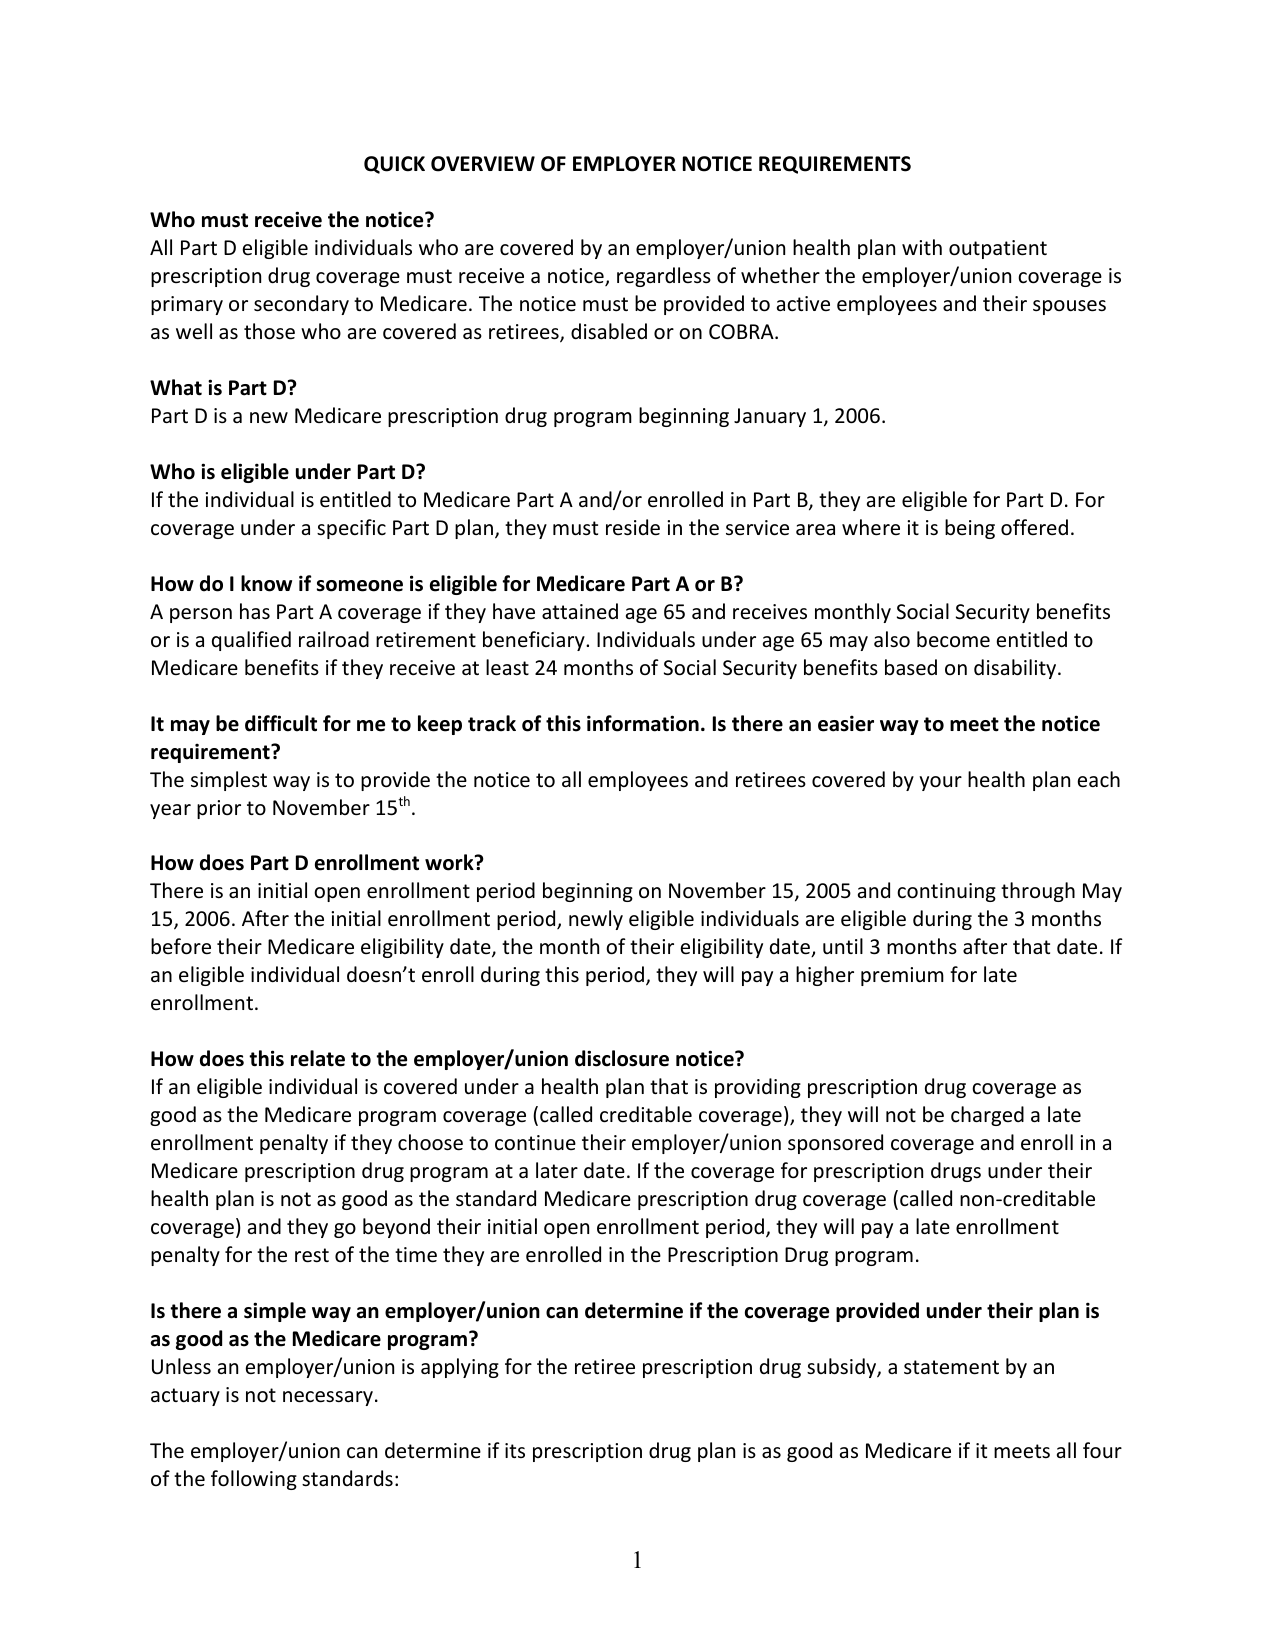 Quick Overview of Employer Notice Requirements